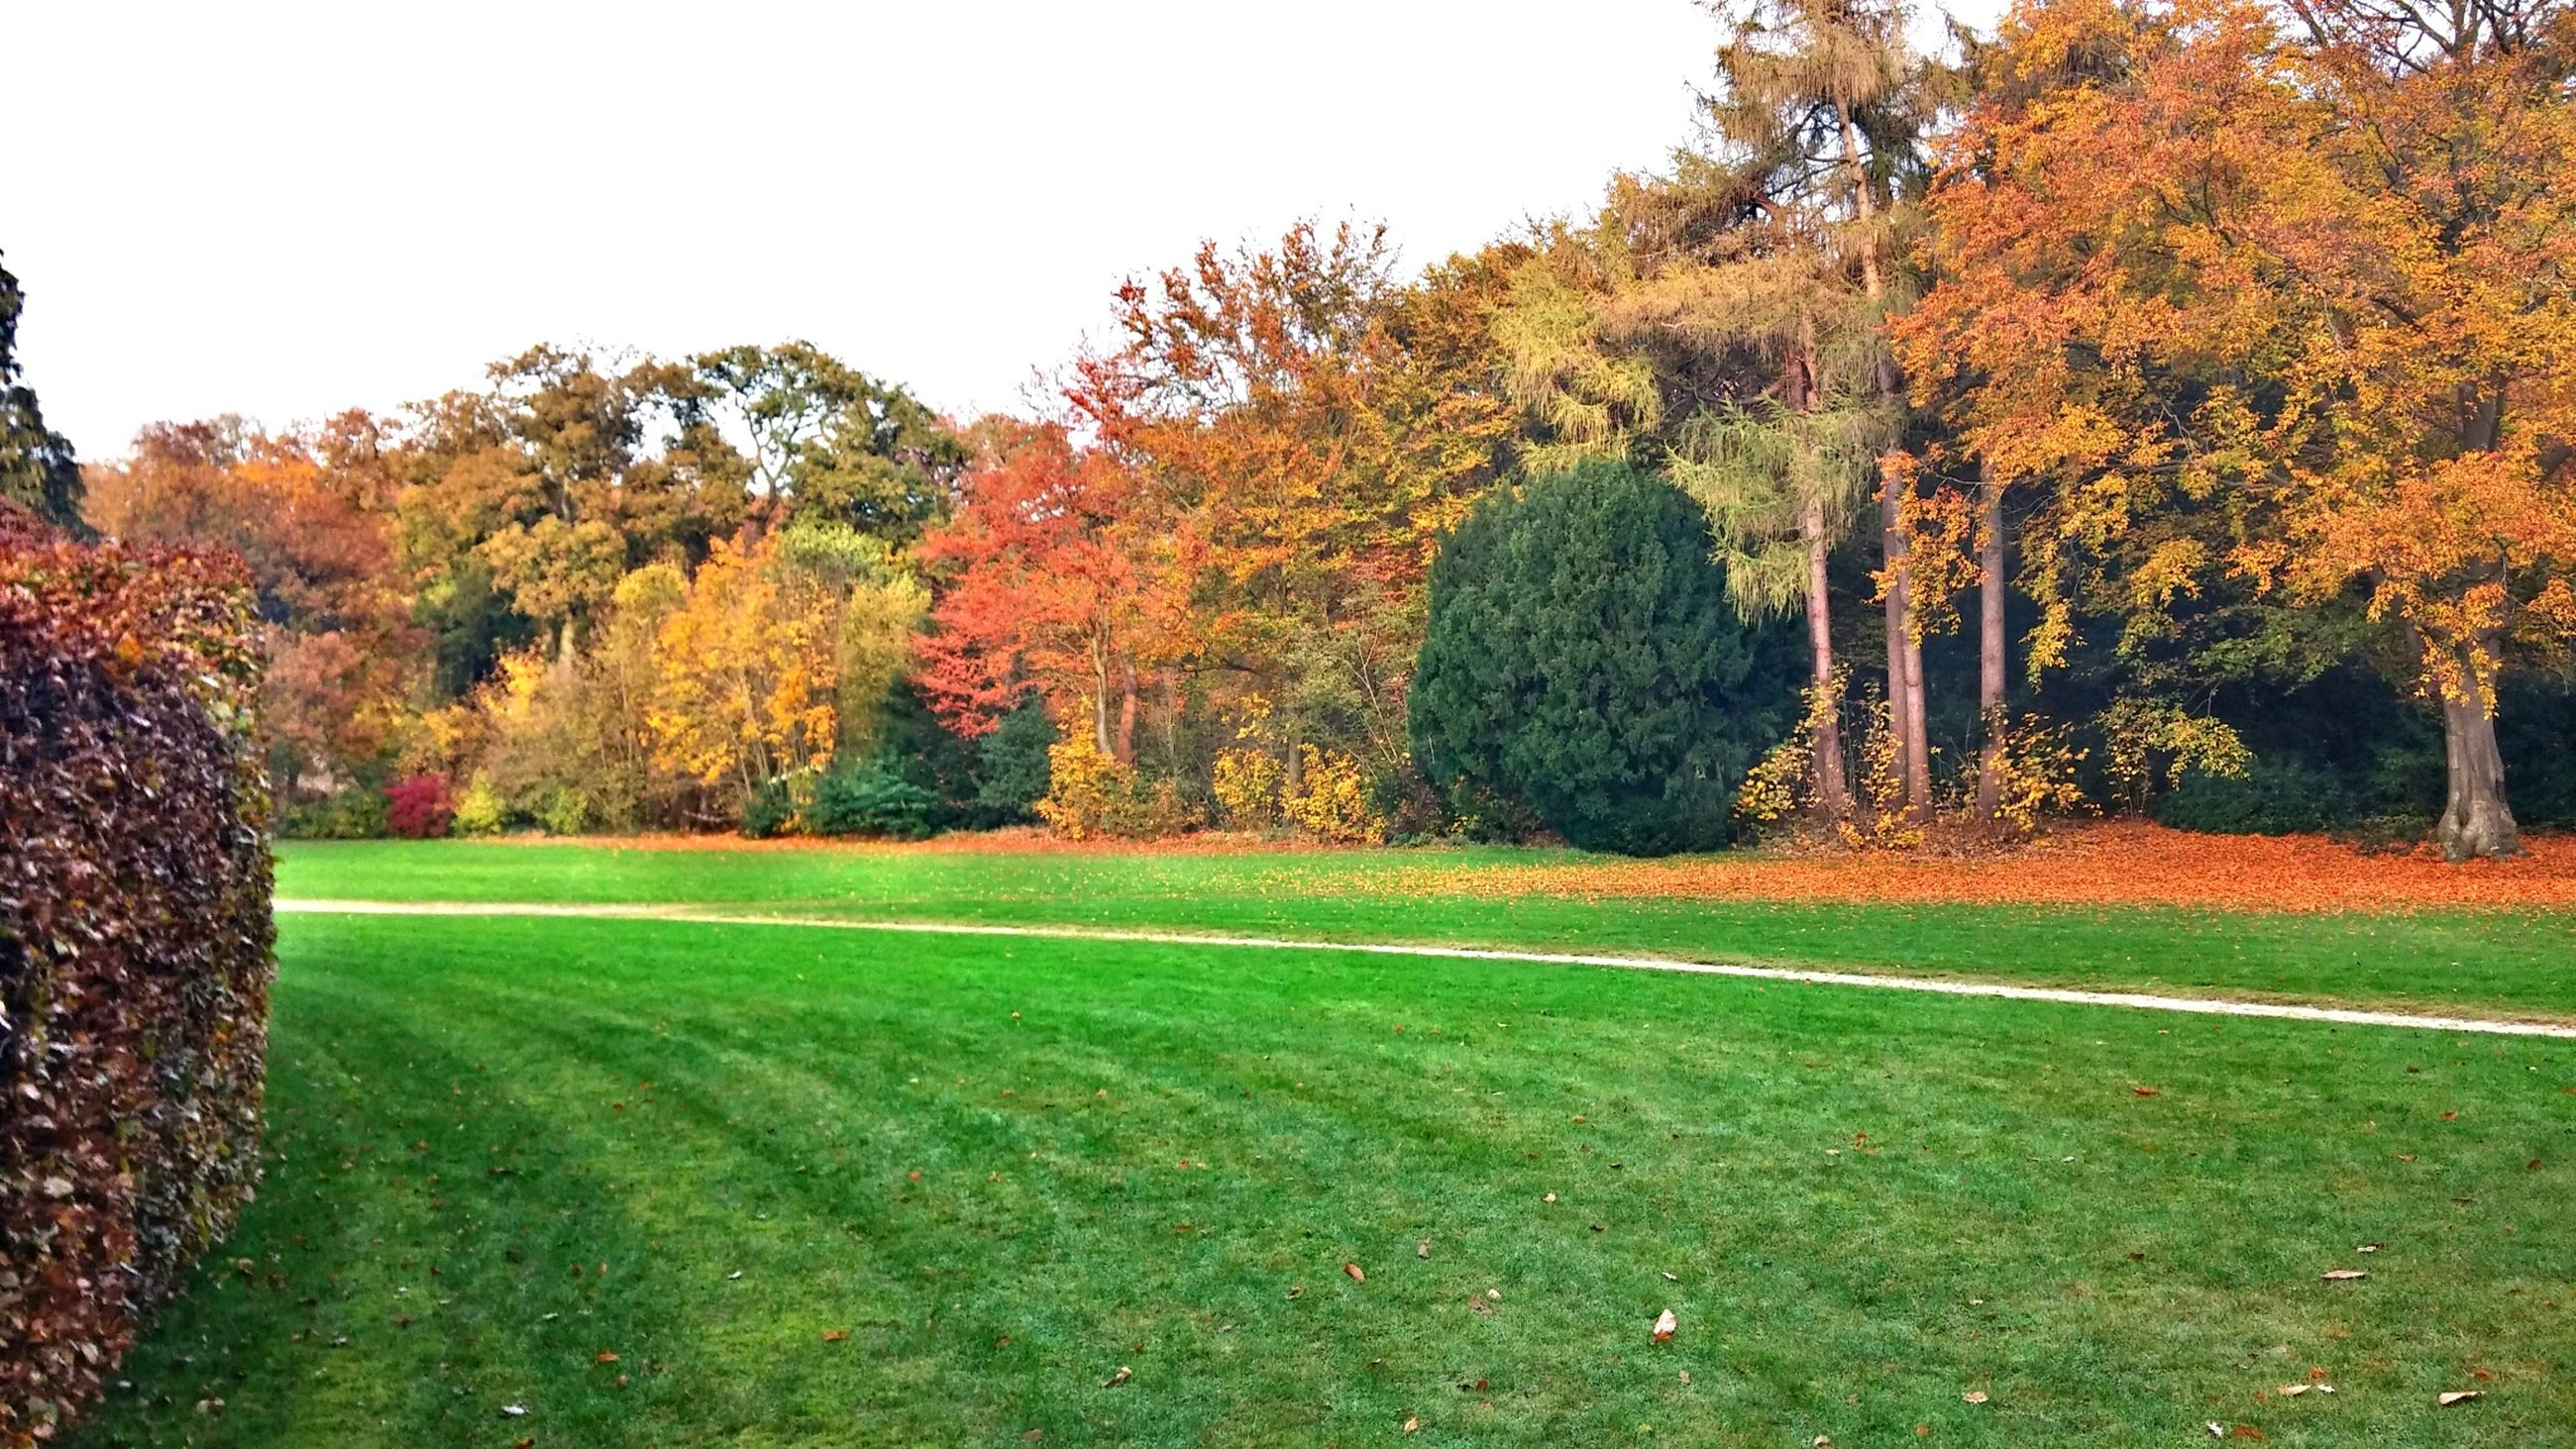 tree, grass, tranquility, autumn, tranquil scene, field, landscape, beauty in nature, clear sky, scenics, grassy, nature, growth, change, park - man made space, green color, season, park, idyllic, orange color